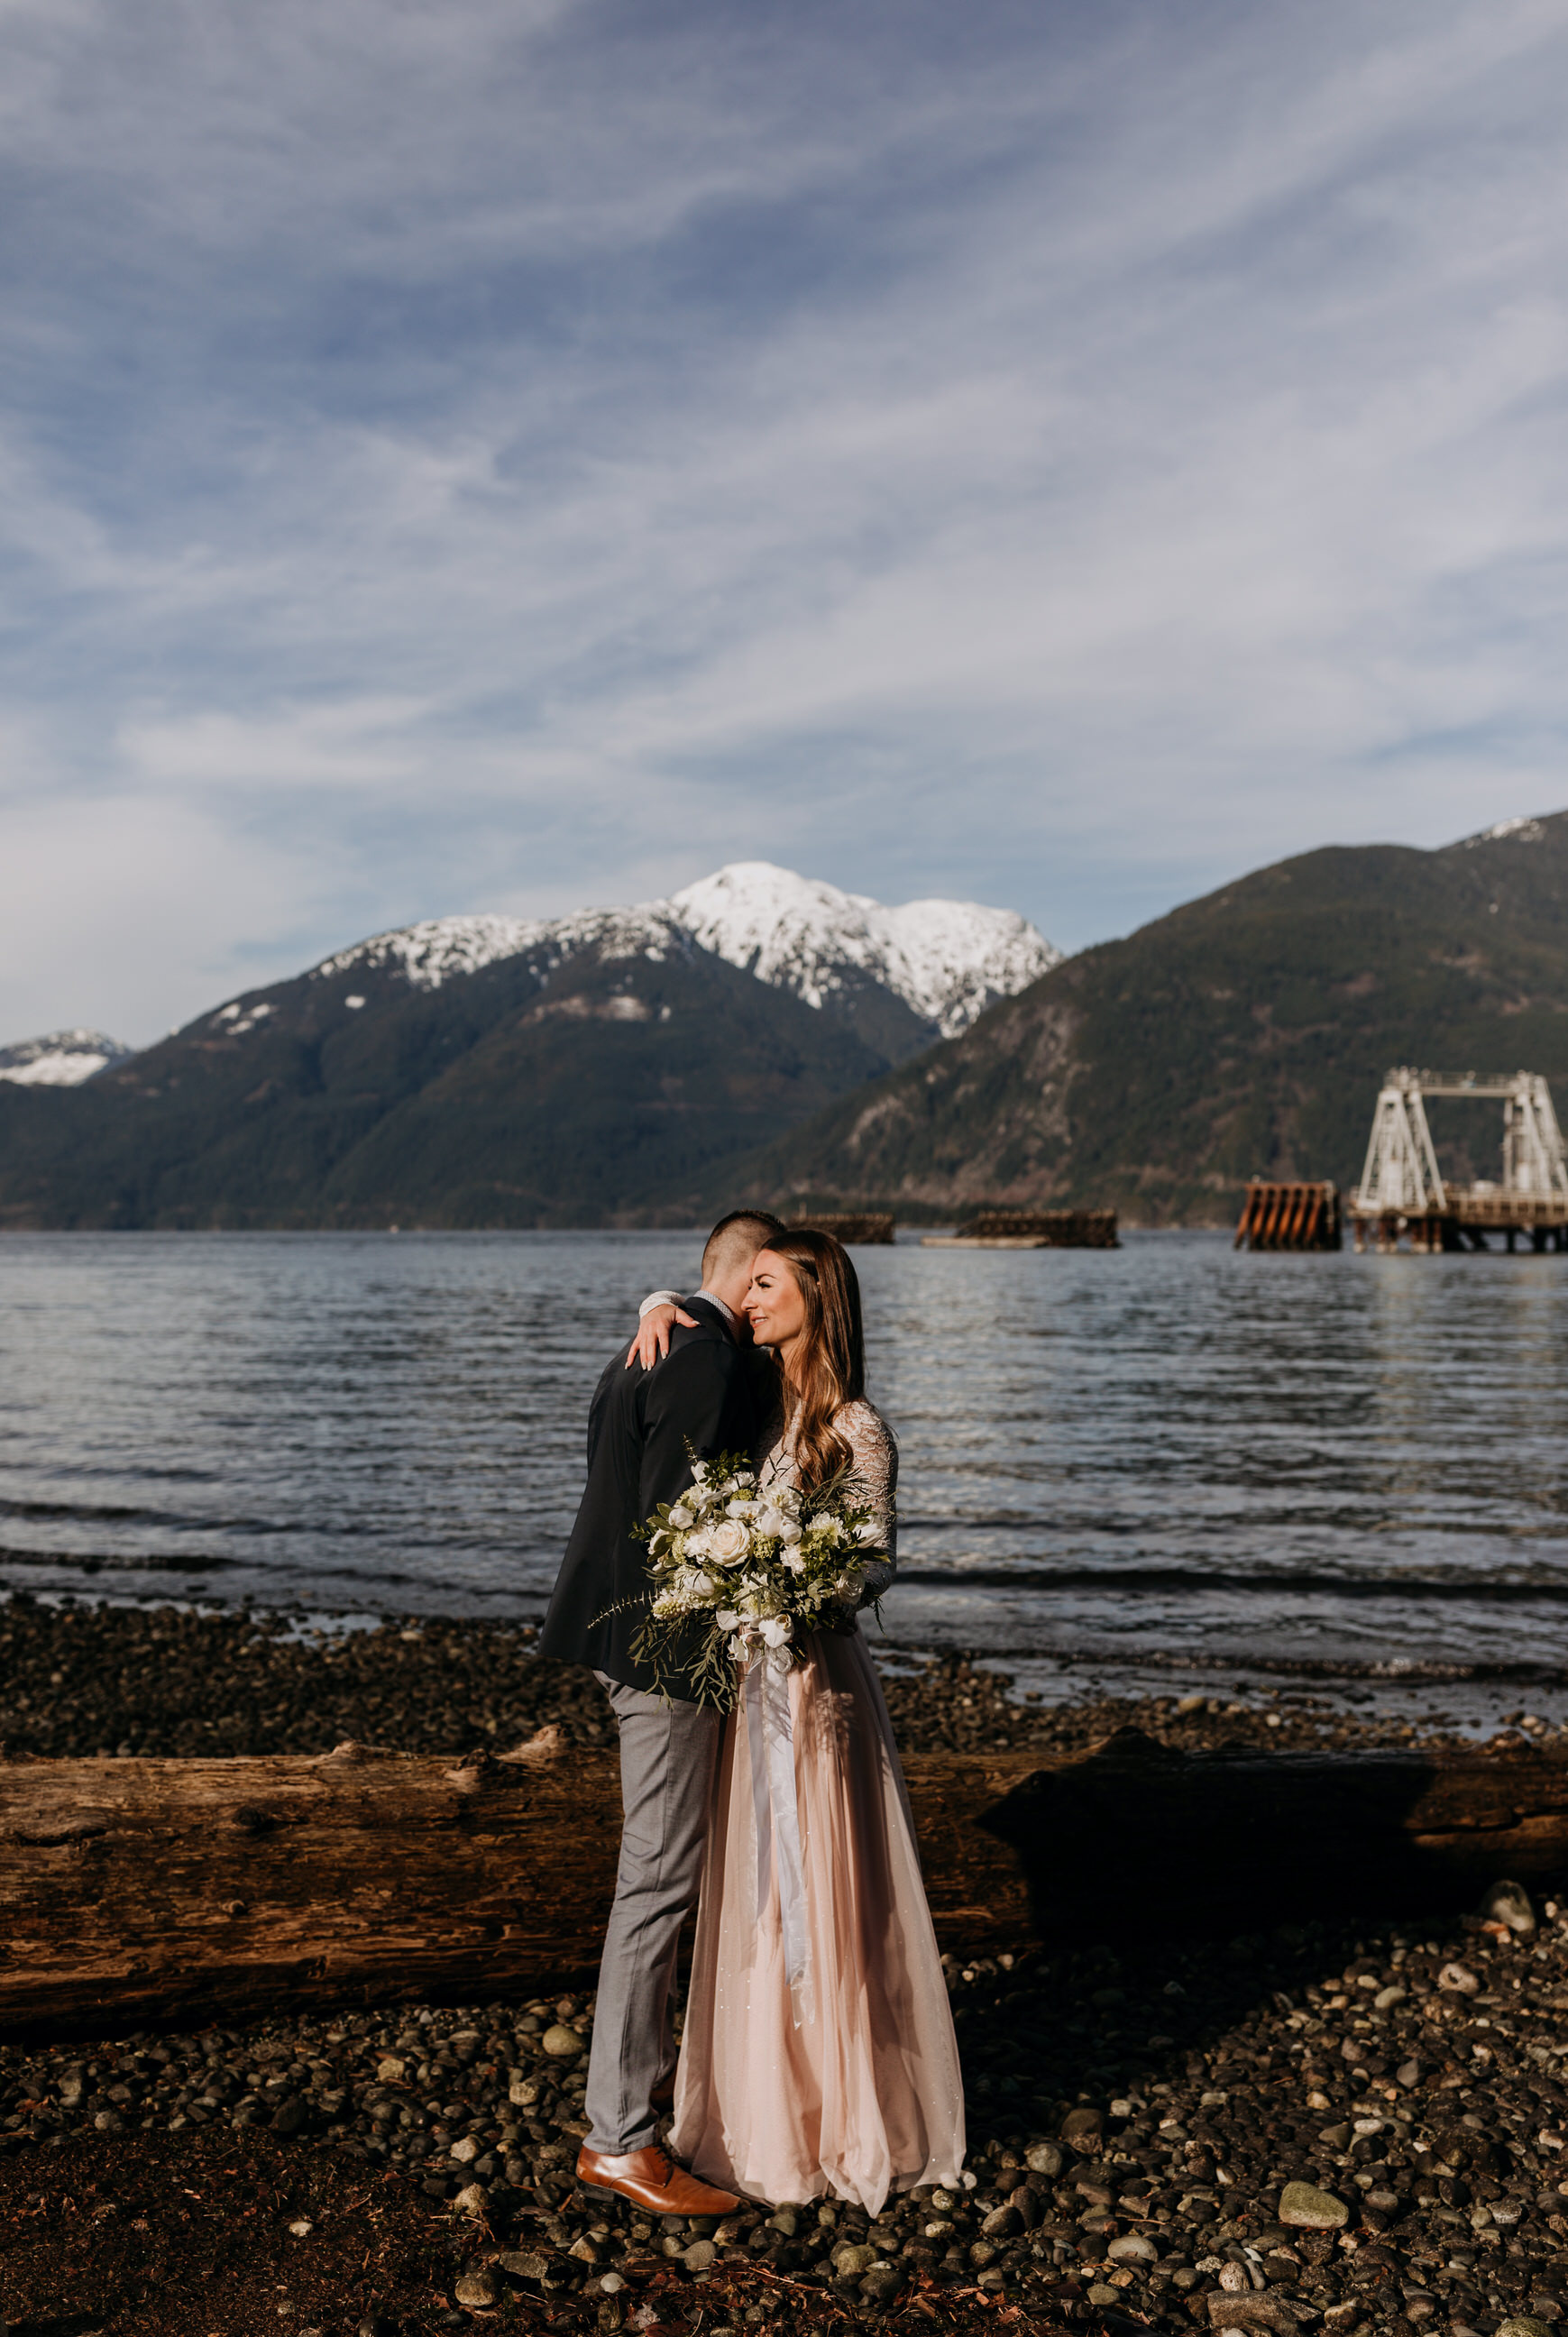 Squamish Engagement Photos - Porteau Cove Engagement Photos - Sunshine Coast Wedding Photographer - Vancouver Wedding Photographer - Squamish Wedding Photographer139.JPG